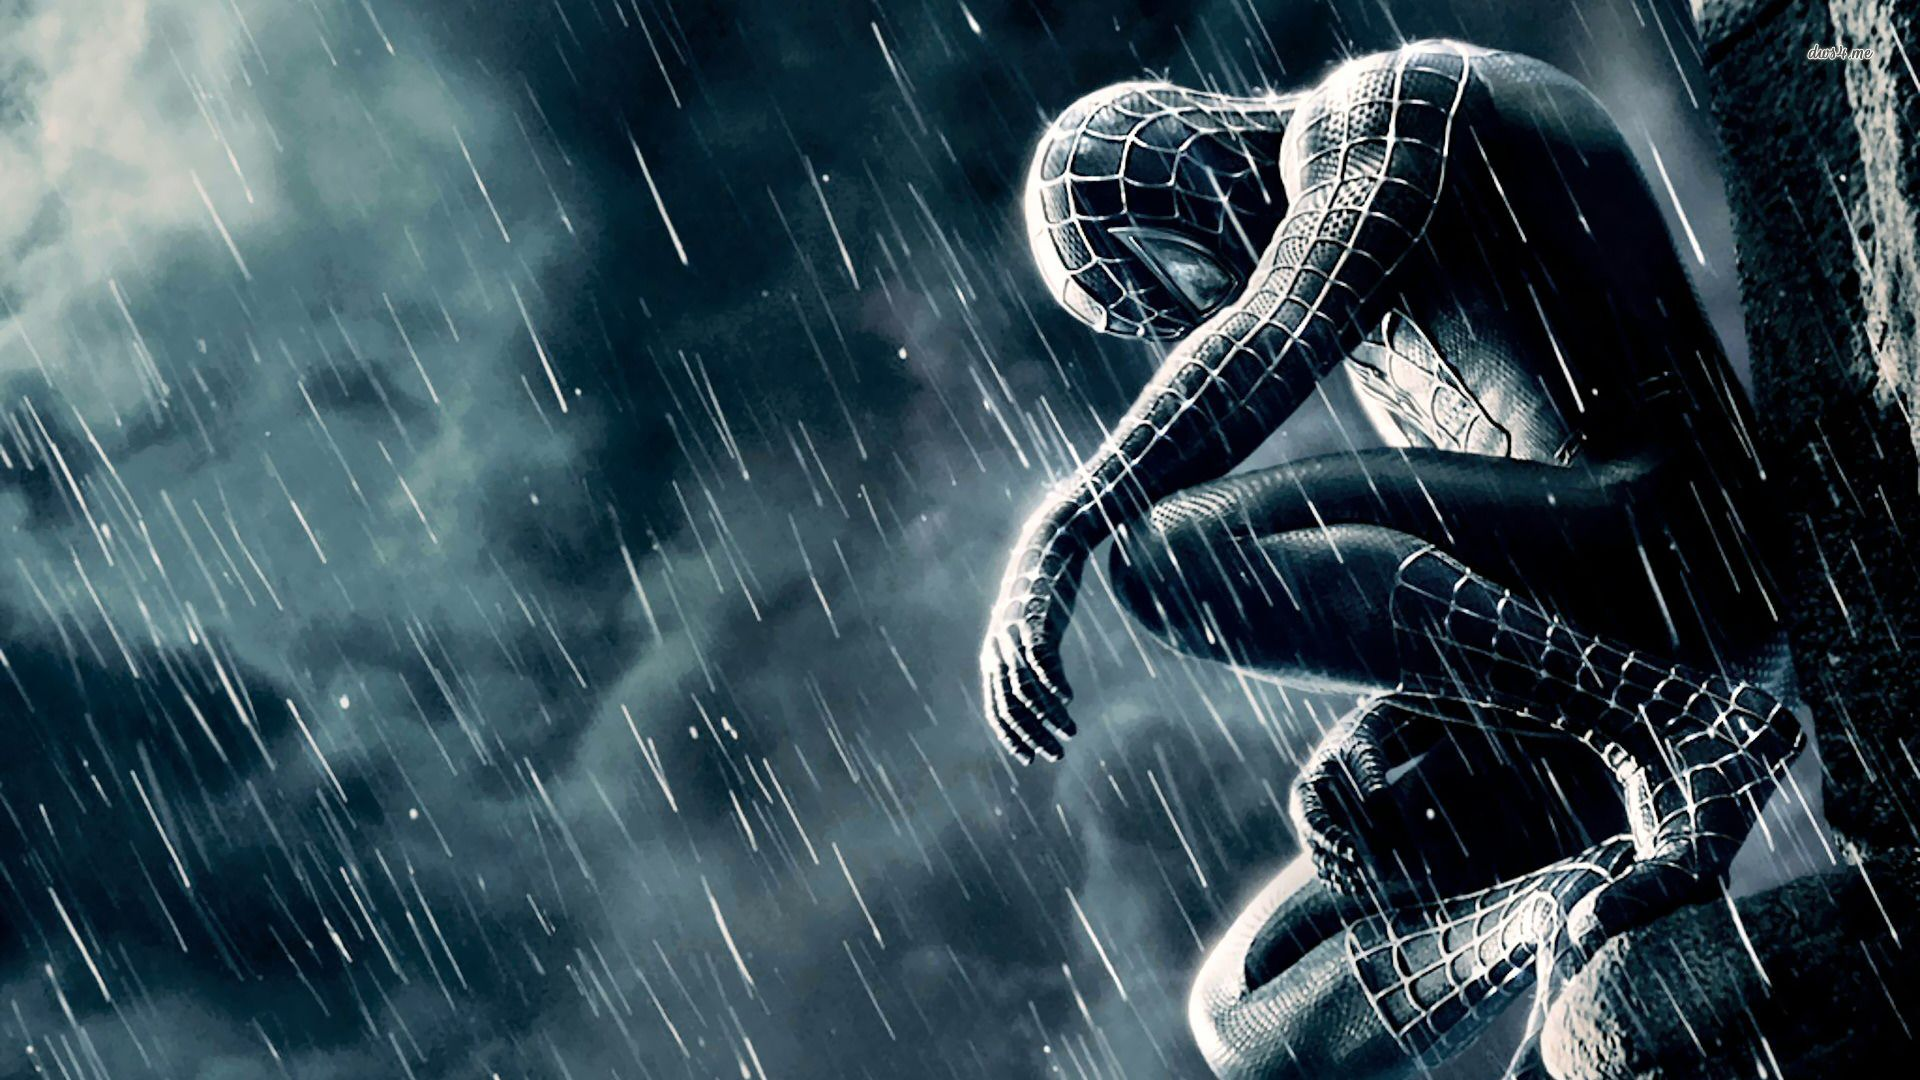 Spider Man 3 Hd Wallpaper Spiderman Pictures Spiderman 3 Wallpaper Spiderman